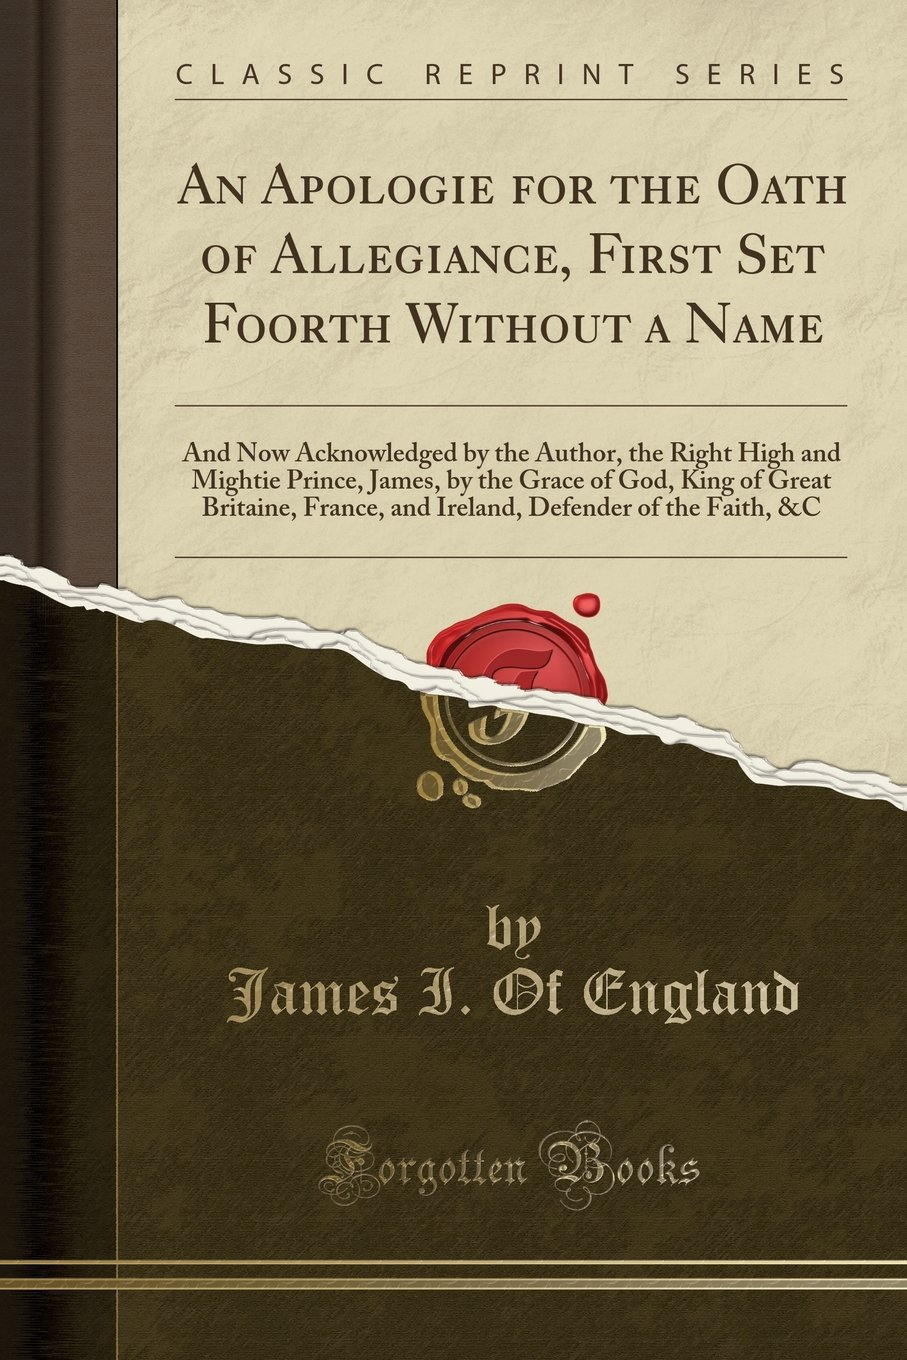 Download An Apologie for the Oath of Allegiance, First Set Foorth Without a Name: And Now Acknowledged by the Author, the Right High and Mightie Prince, James, ... and Ireland, Defender of the Faith, &C pdf